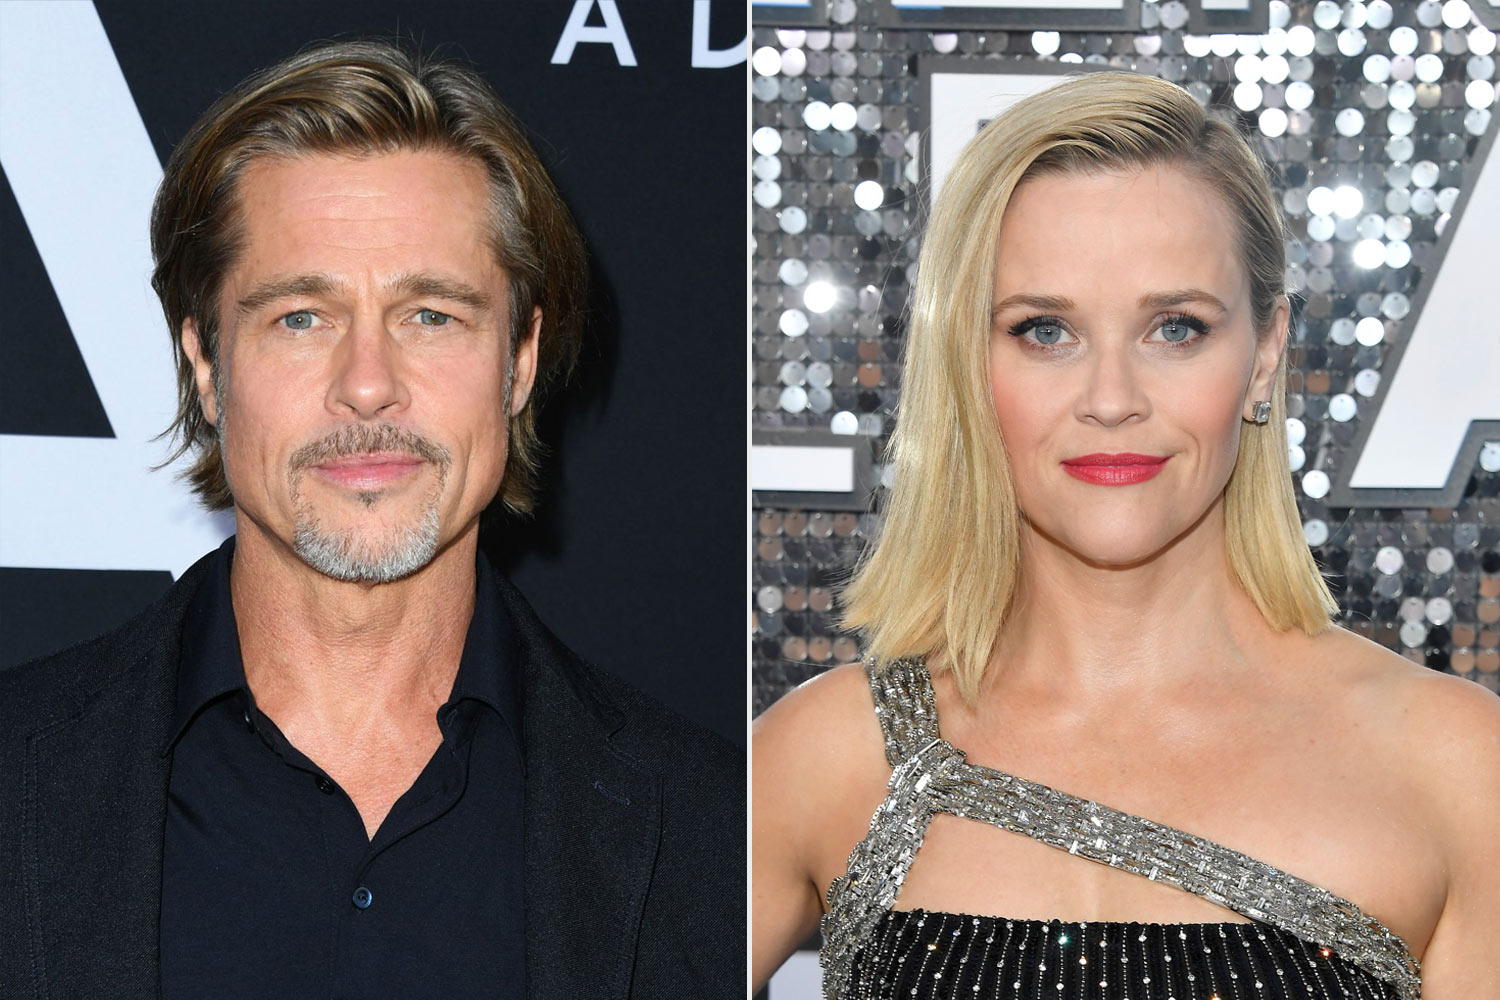 Brad Pitt and Reese Witherspoon